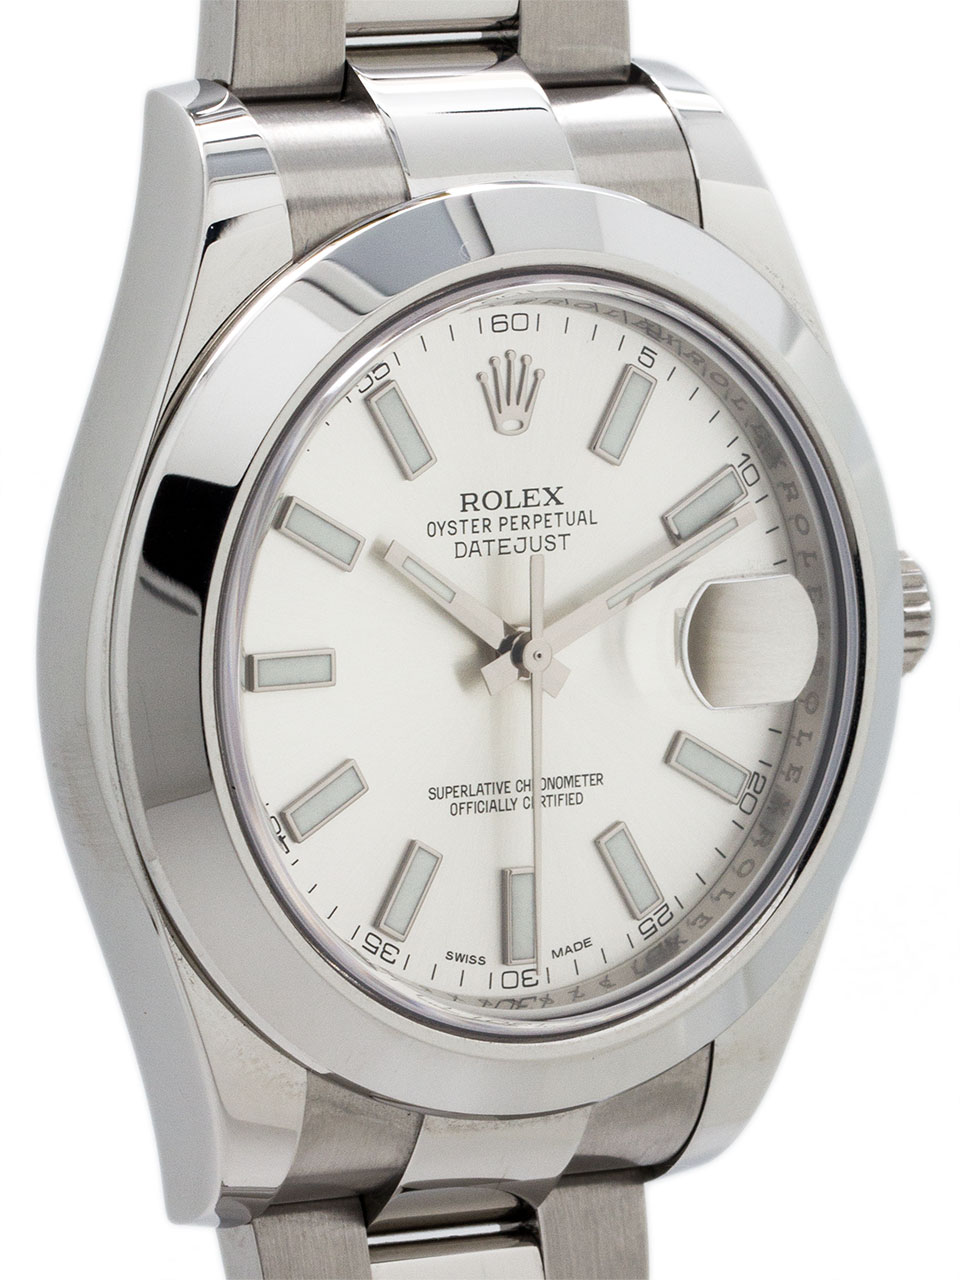 Rolex Stainless Steel Datejust II ref 116300 Silver Dial Mint!